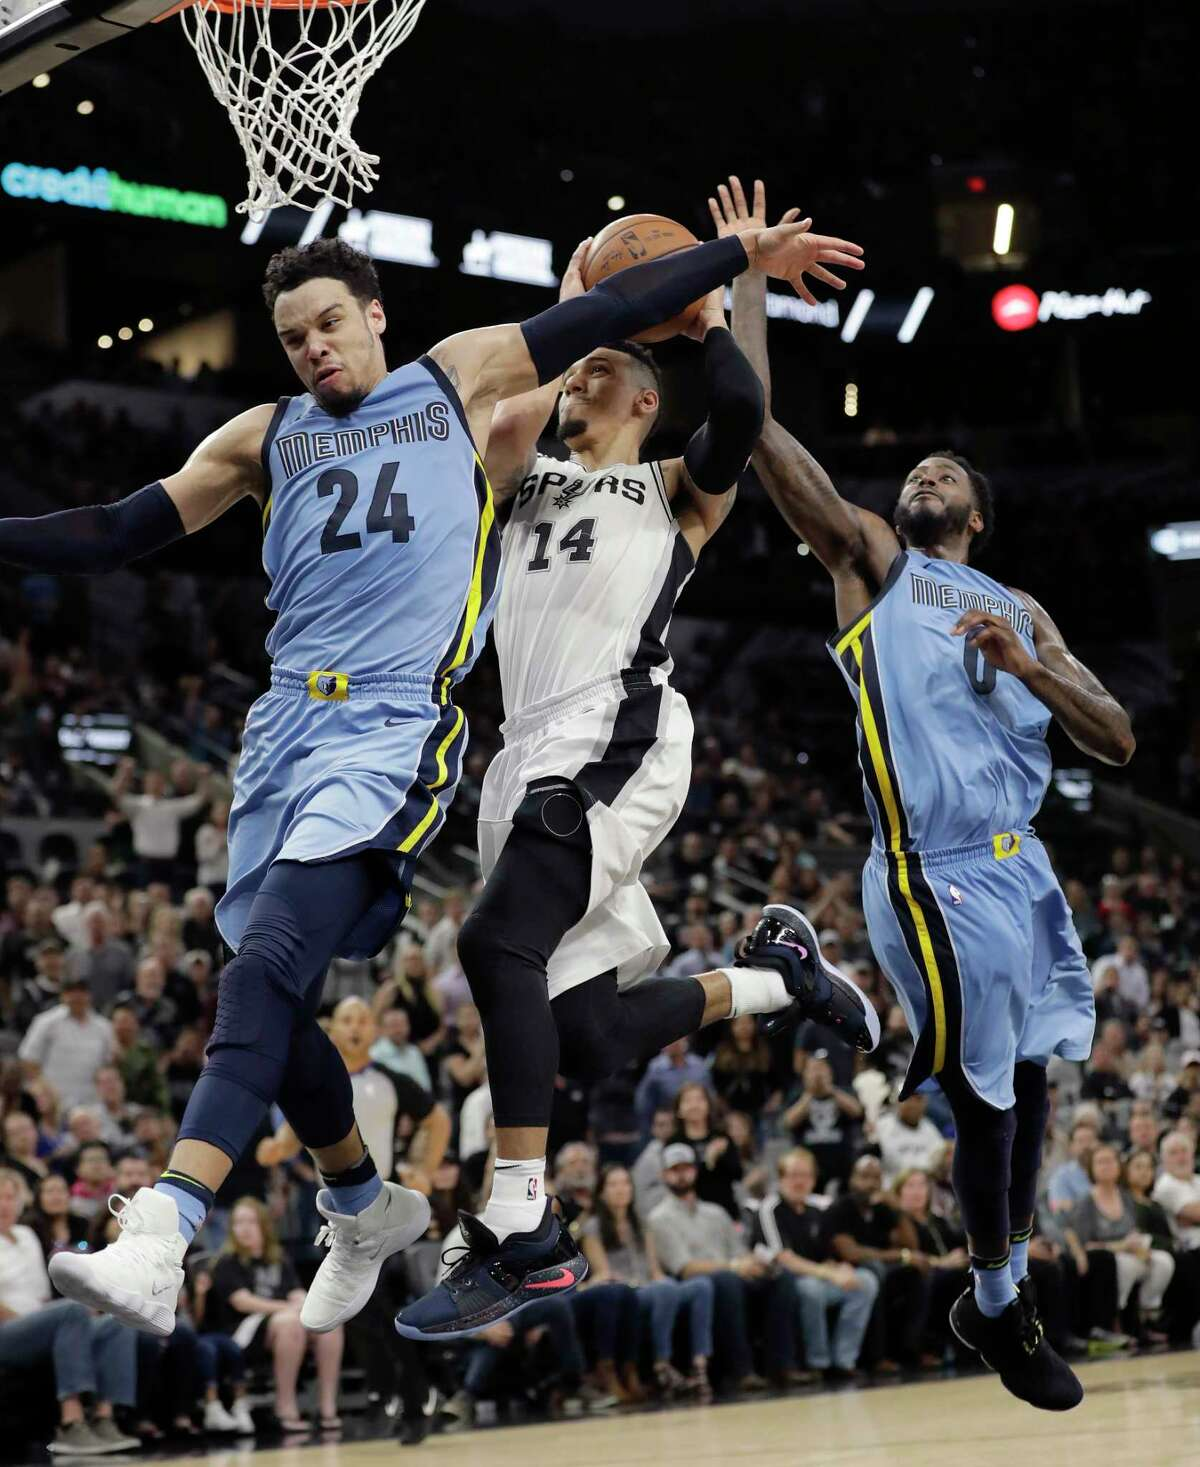 San Antonio Spurs guard Danny Green (14) drives to the basket between Memphis Grizzlies defenders Dillon Brooks (24) and JaMychal Green (0) during the second half of an NBA basketball game, Monday, March 5, 2018, in San Antonio. (AP Photo/Eric Gay)